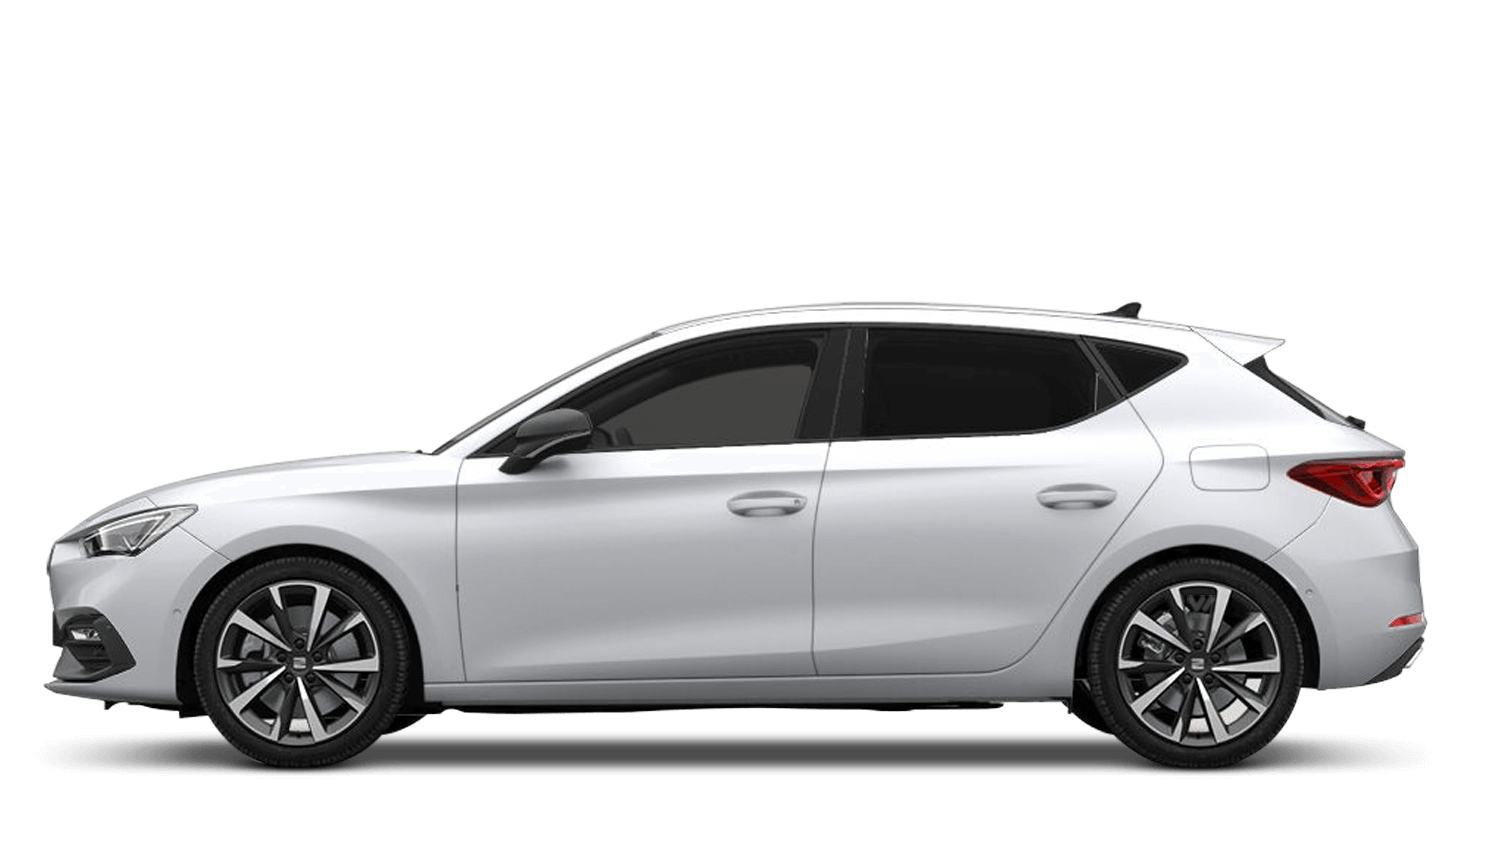 Nevada White (Metallic) New SEAT Leon e-Hybrid